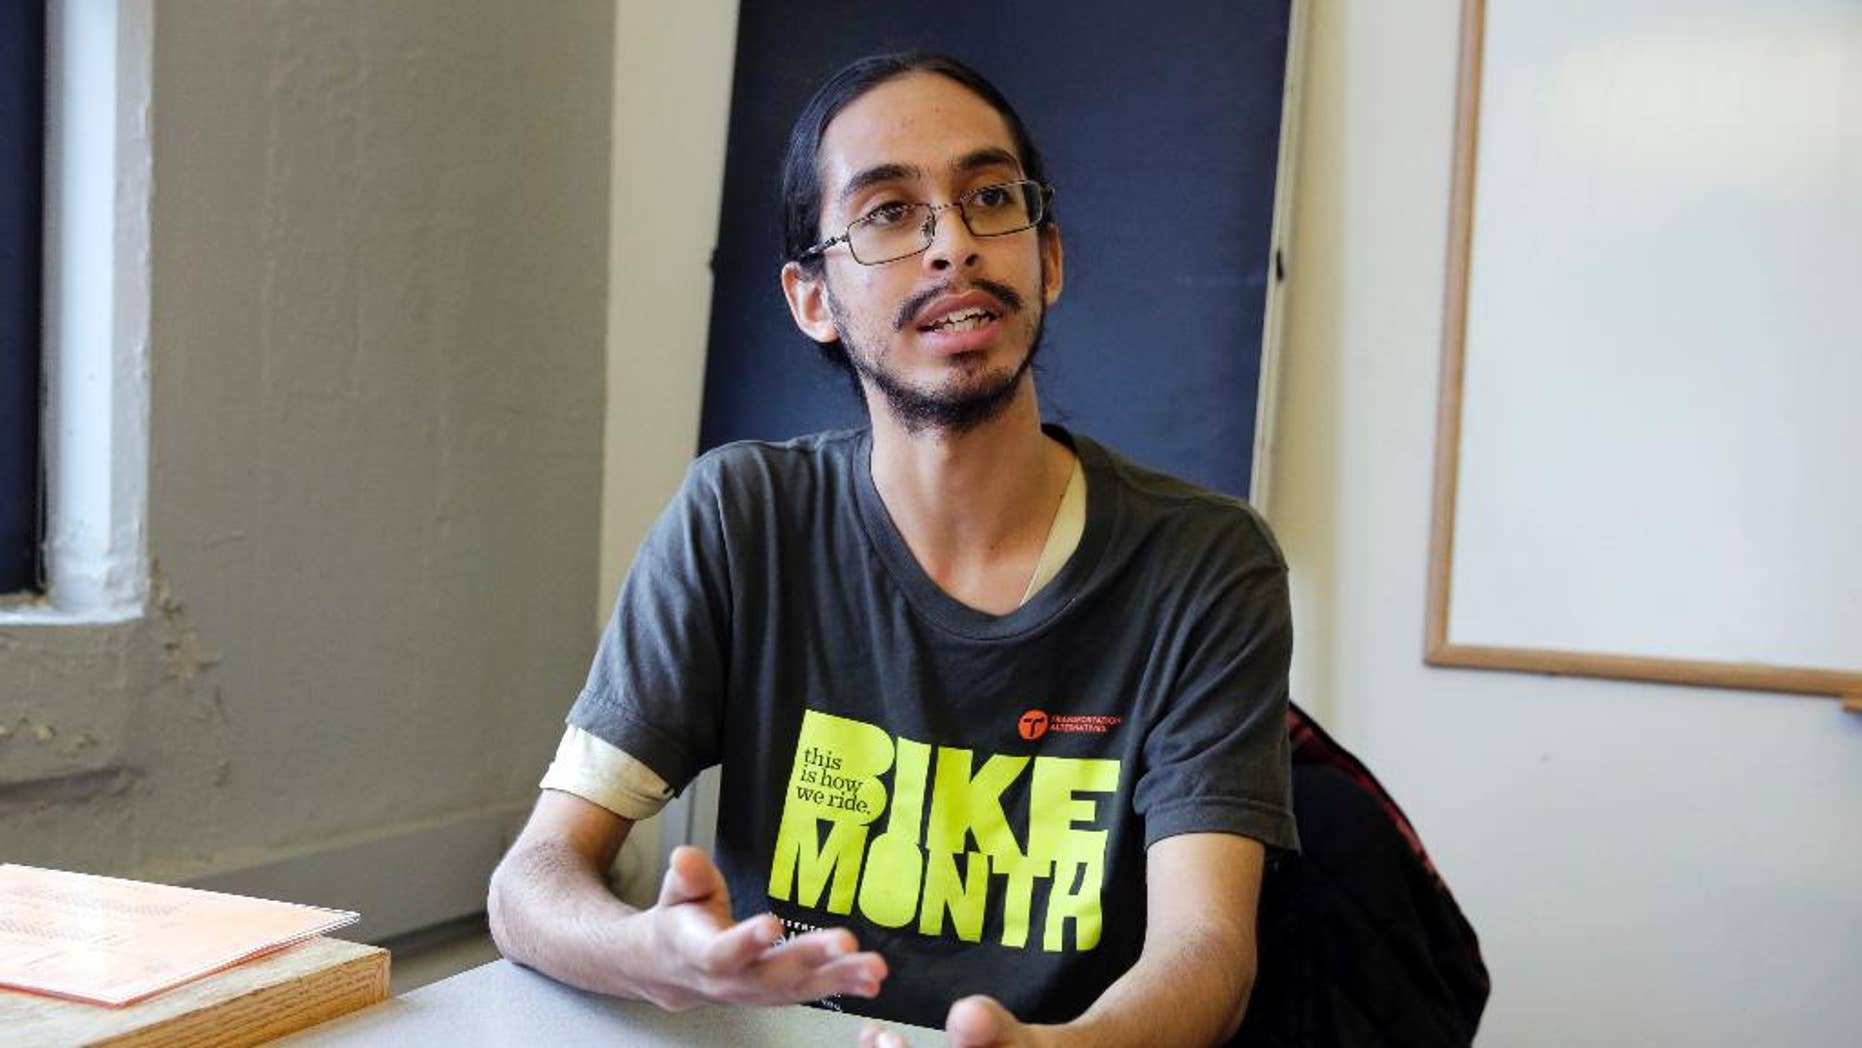 Samuel Santaella, 23, from the Queens borough of New York, speaks during an interview the offices of Riders Alliance, in New York, Wednesday, Nov. 30, 2016.  The Riders Alliance,  a commuter advocacy group, along with the anti-poverty group Community Service Society of New York, has been calling on Democratic Mayor Bill de Blasio to include an estimated $200 million in the city's preliminary budget plan this January that would help pay for discounted subway and bus rides.  (AP Photo/Richard Drew)